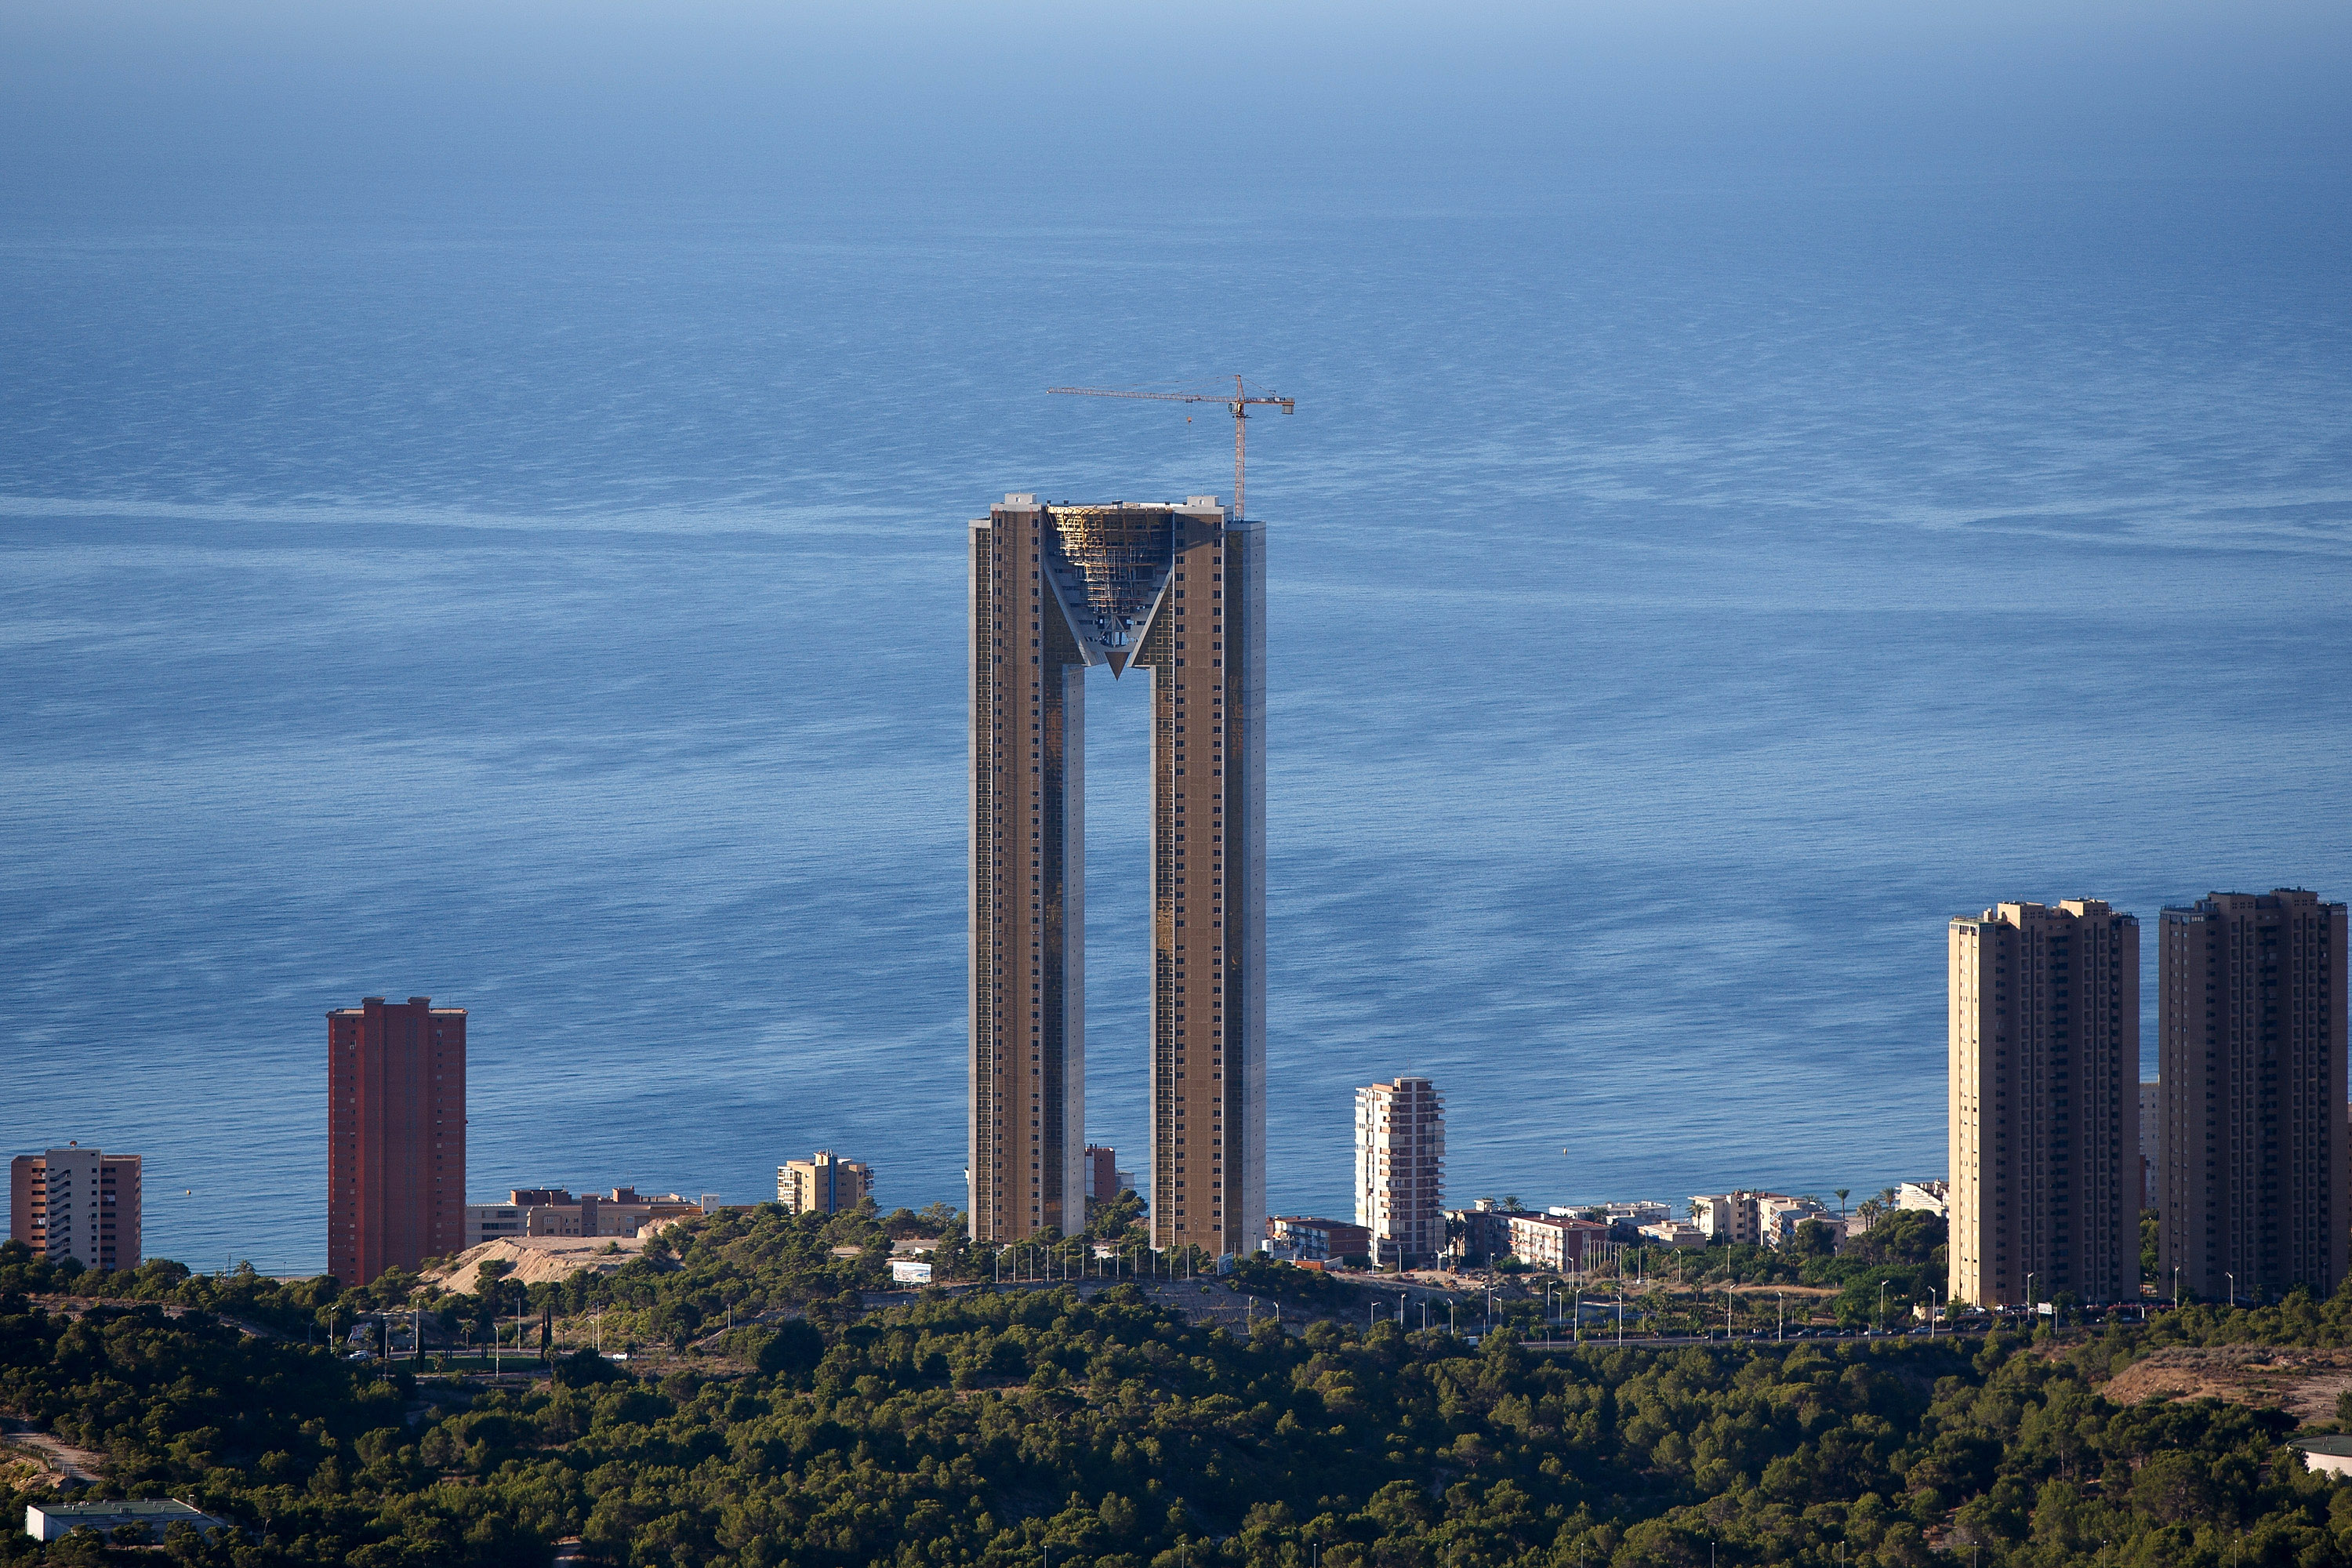 Spain Building With 47 Floors And No Elevator Spanish